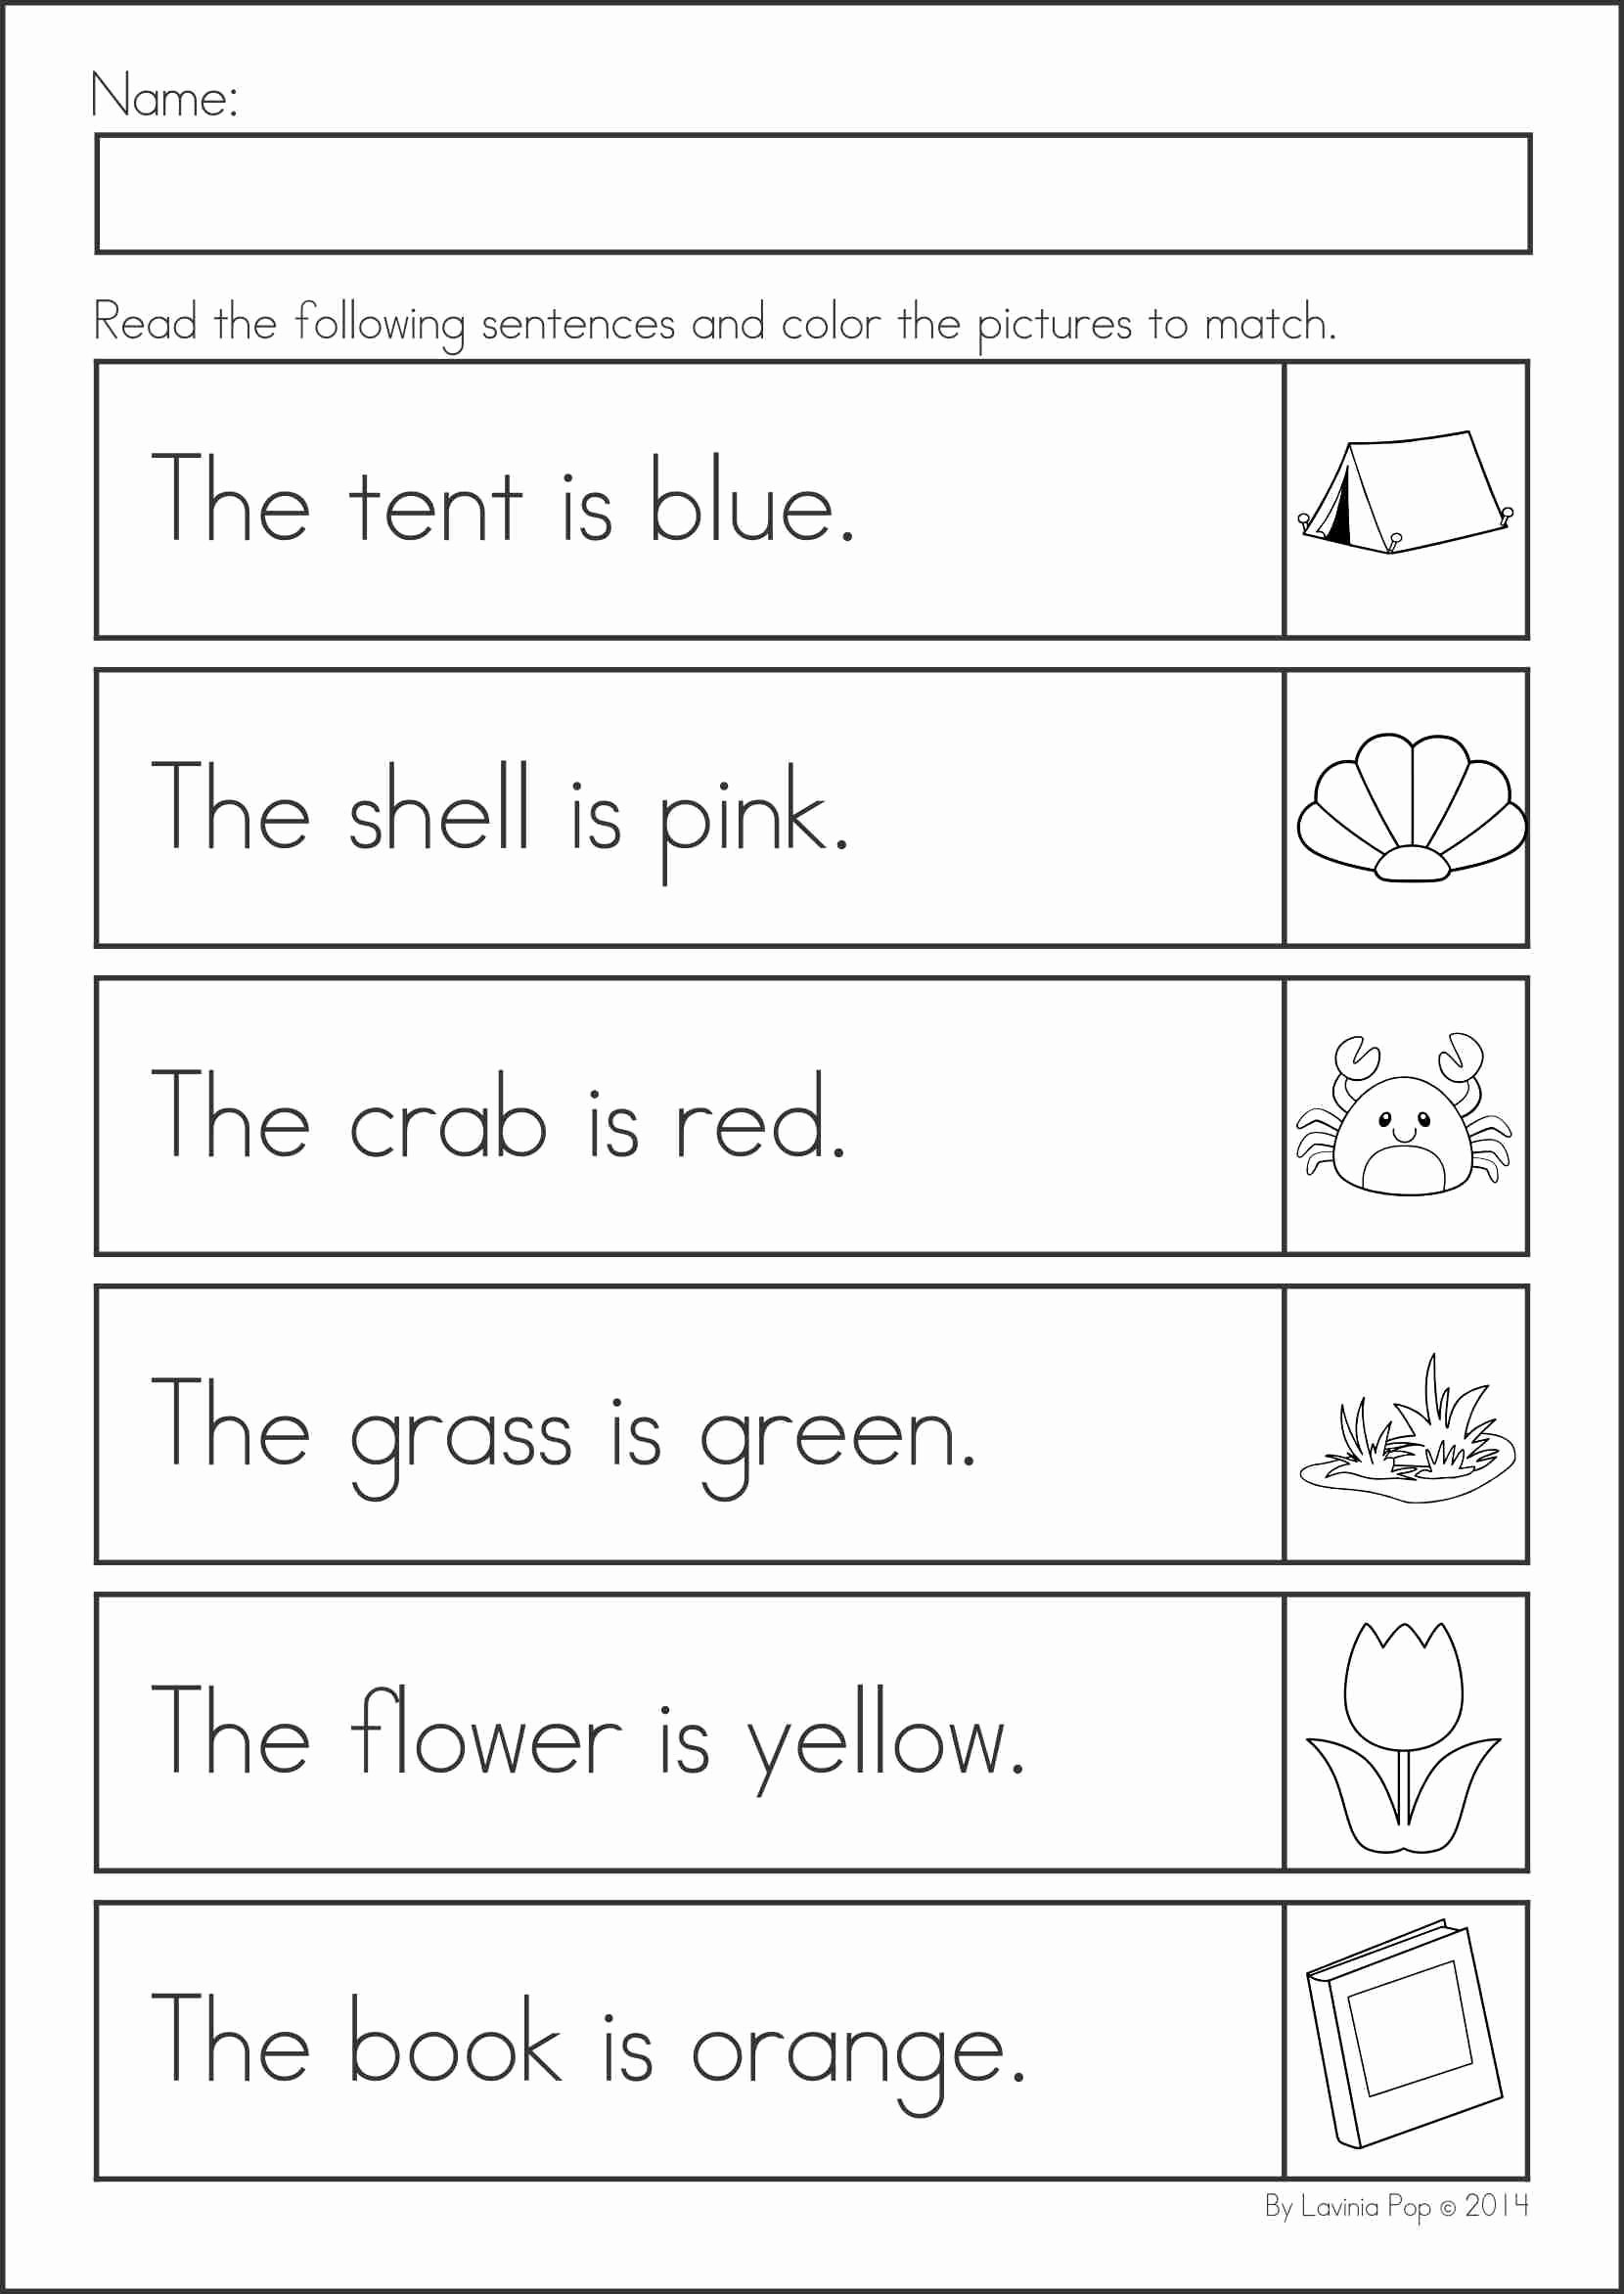 Reading Readiness Worksheets for Preschoolers Unique Summer Review Kindergarten Math & Literacy Worksheets